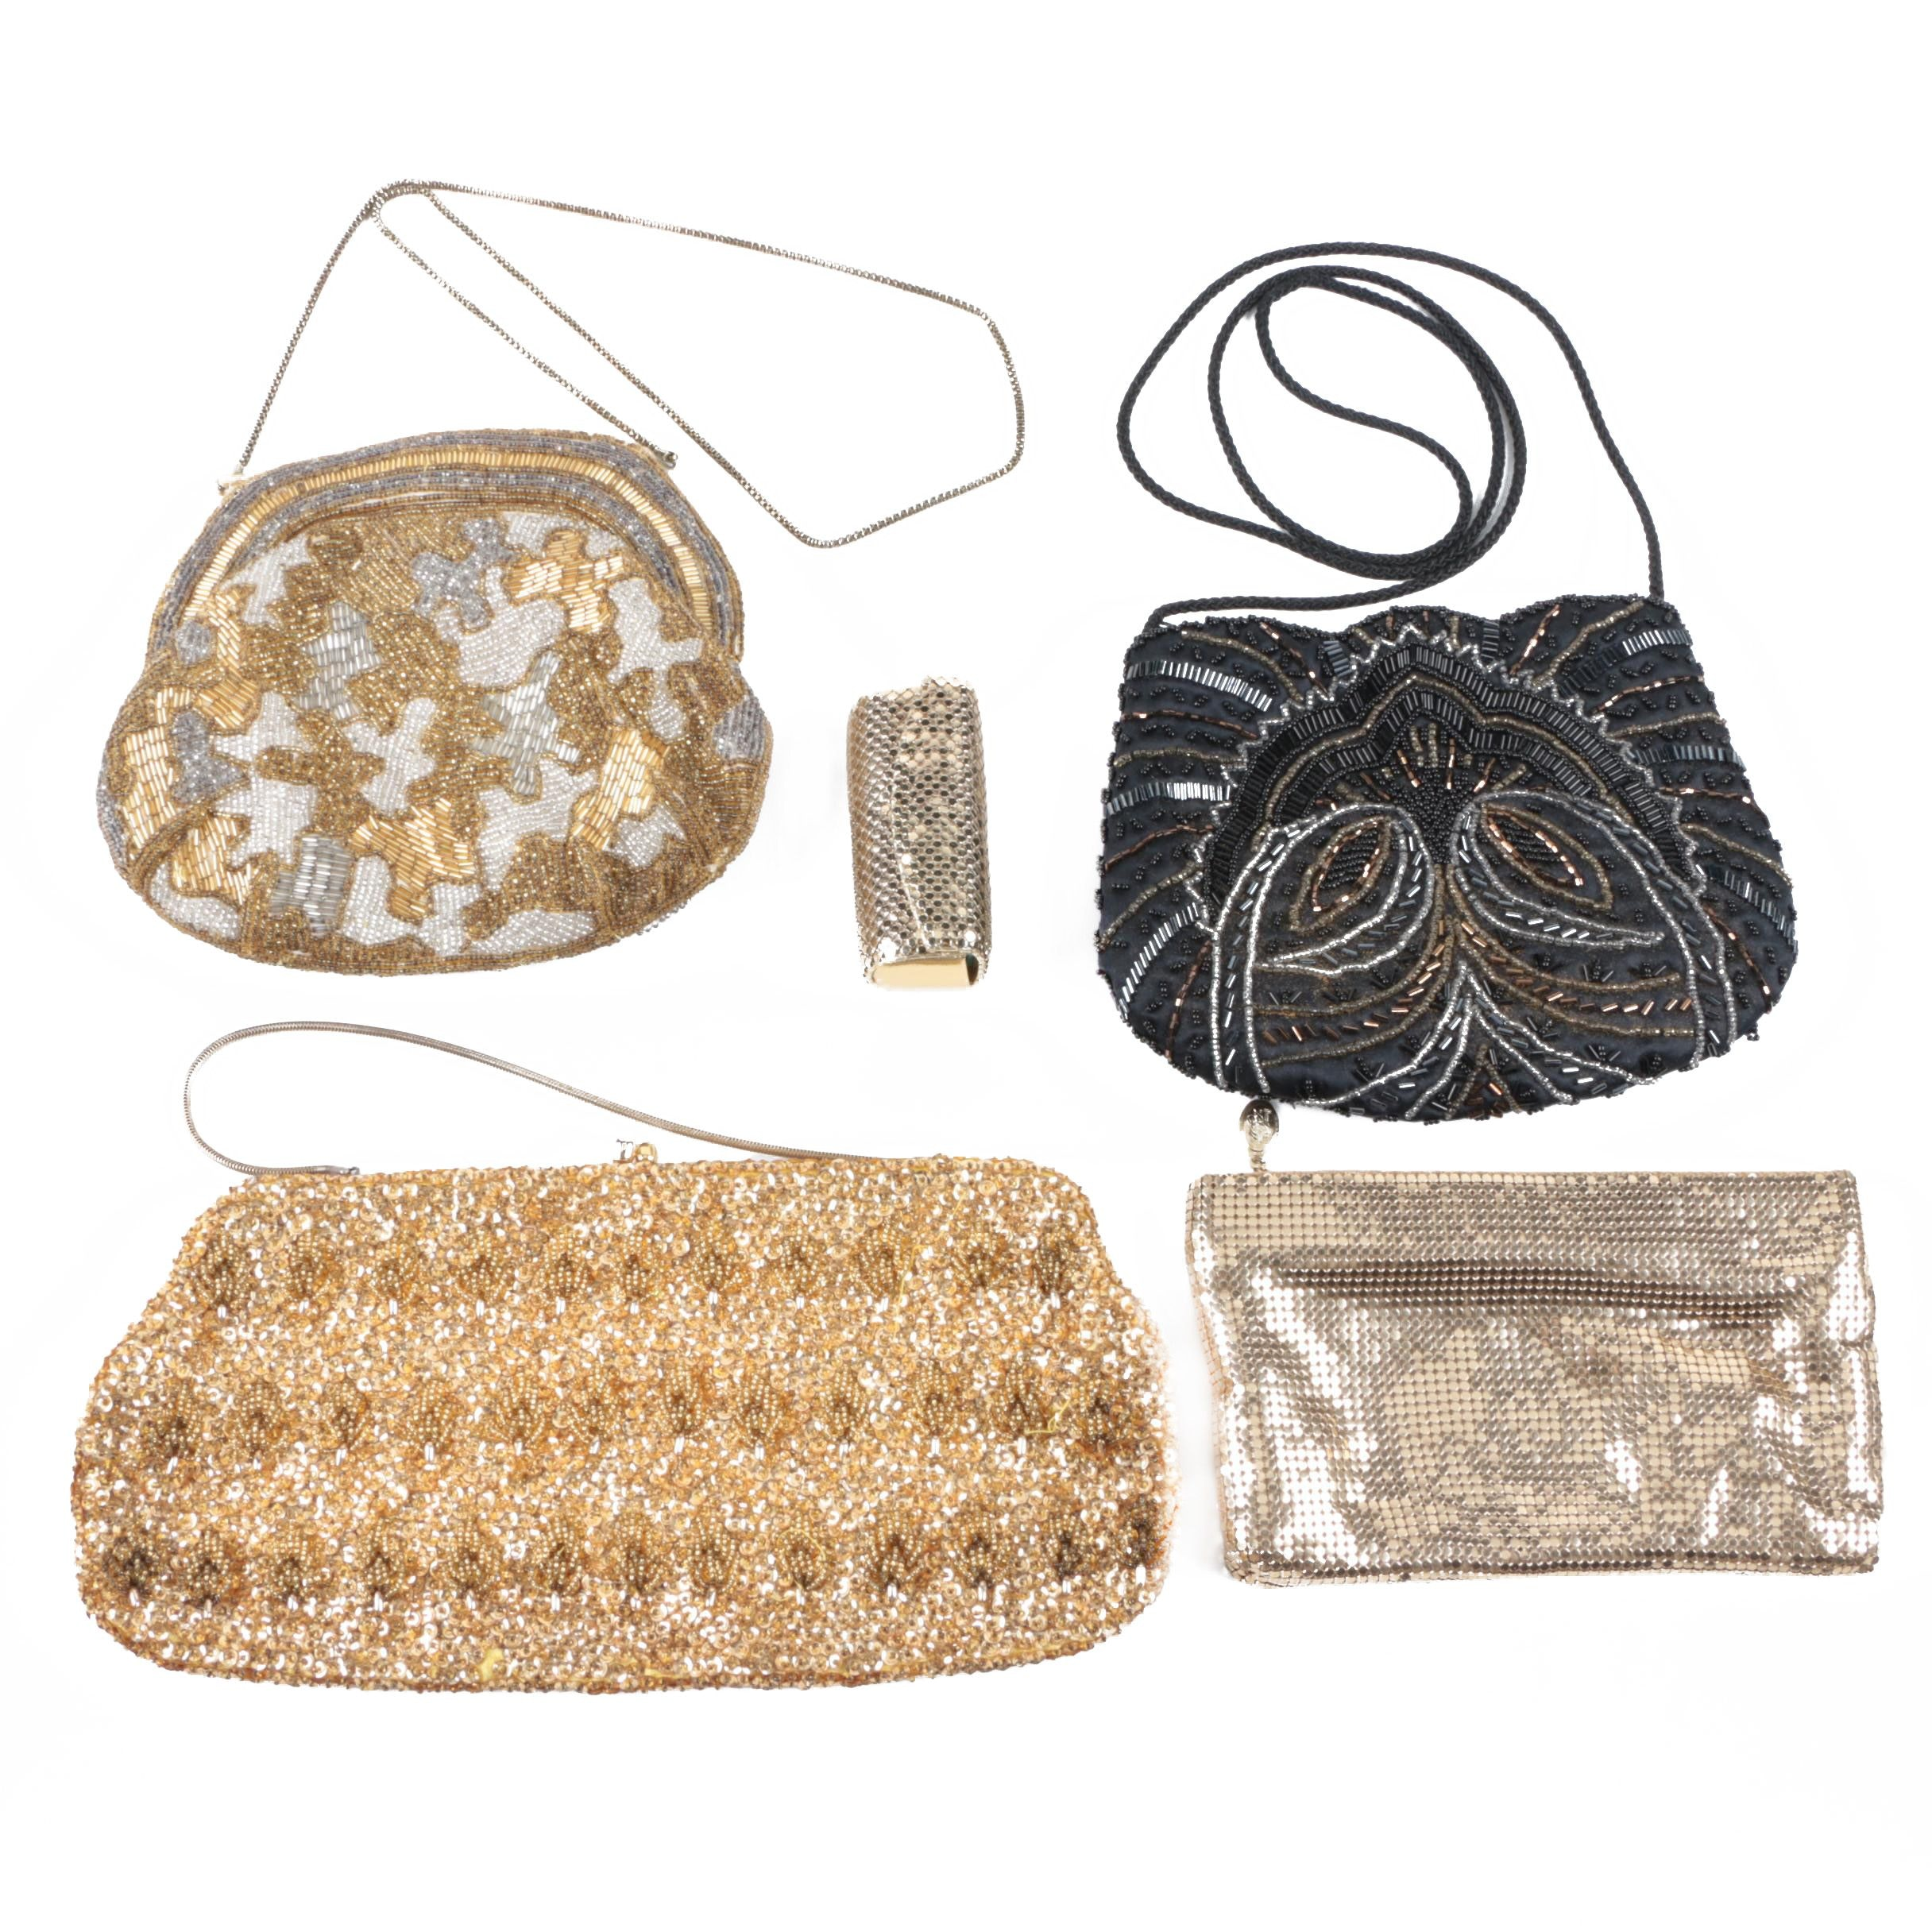 Beaded Handbags and Accessories Including Walborg and Whiting and Davis